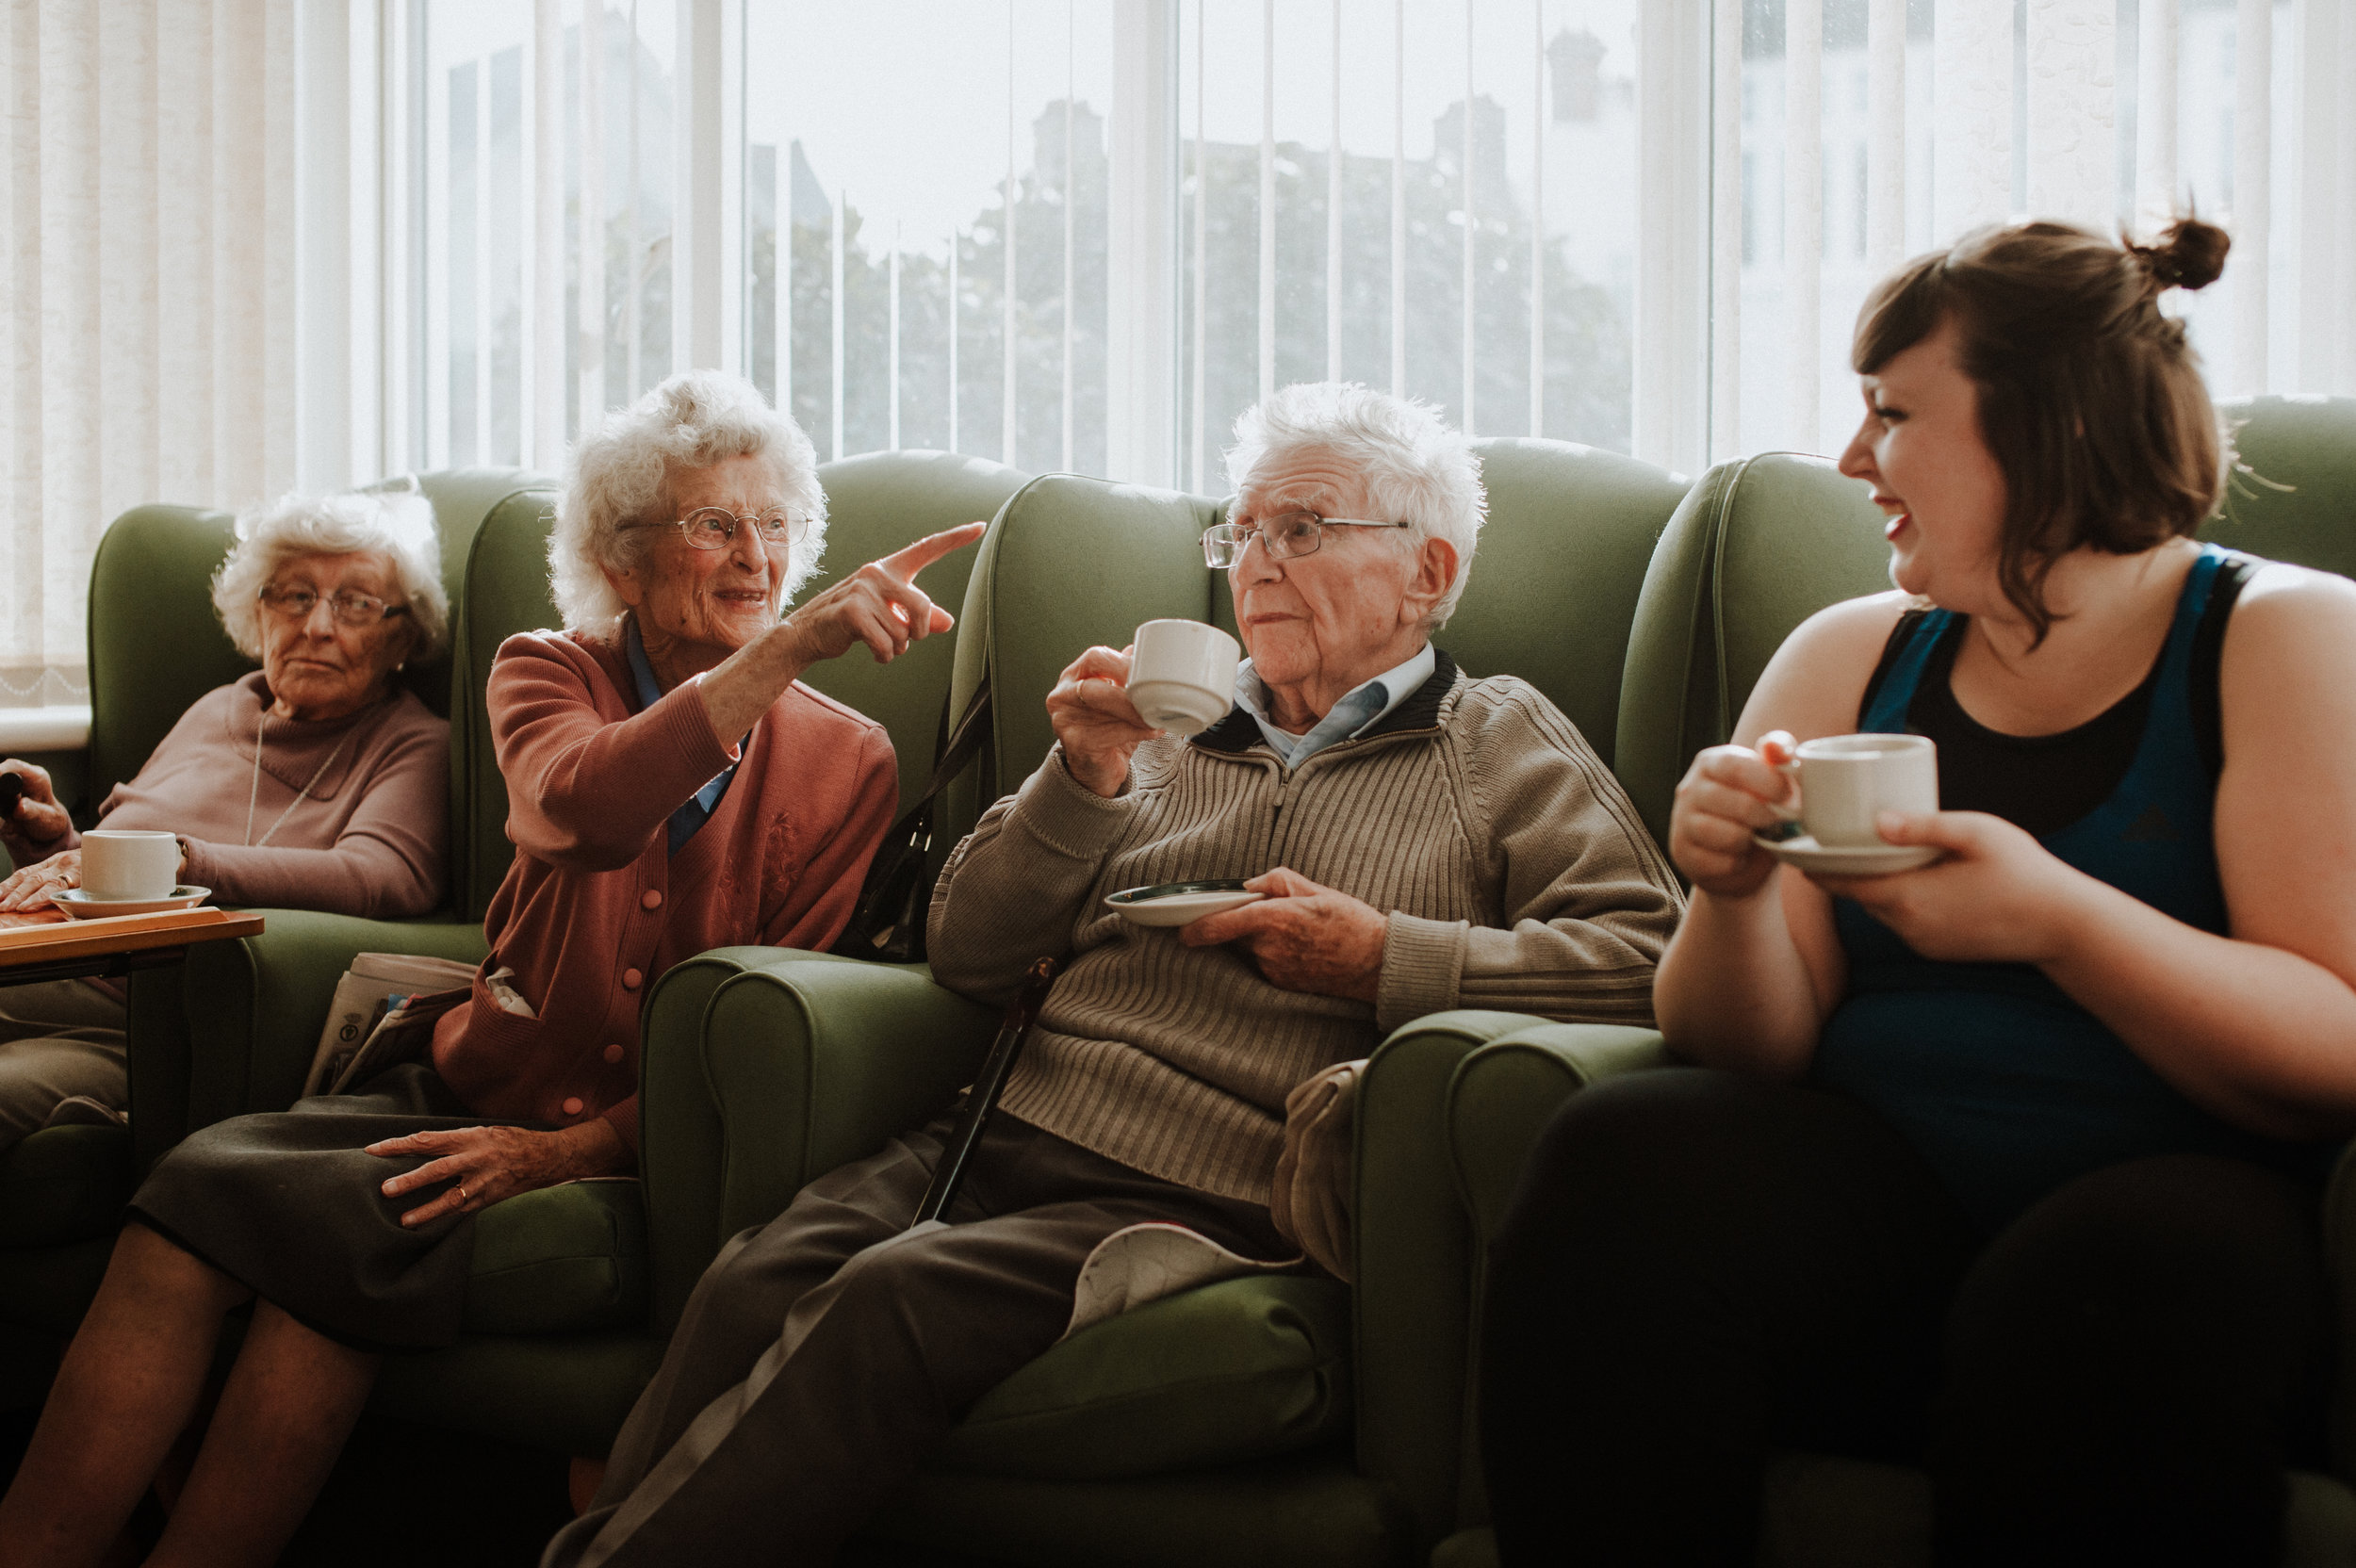 residents enjoy a joke in the living room at Brambles care home Leigh-on-Sea